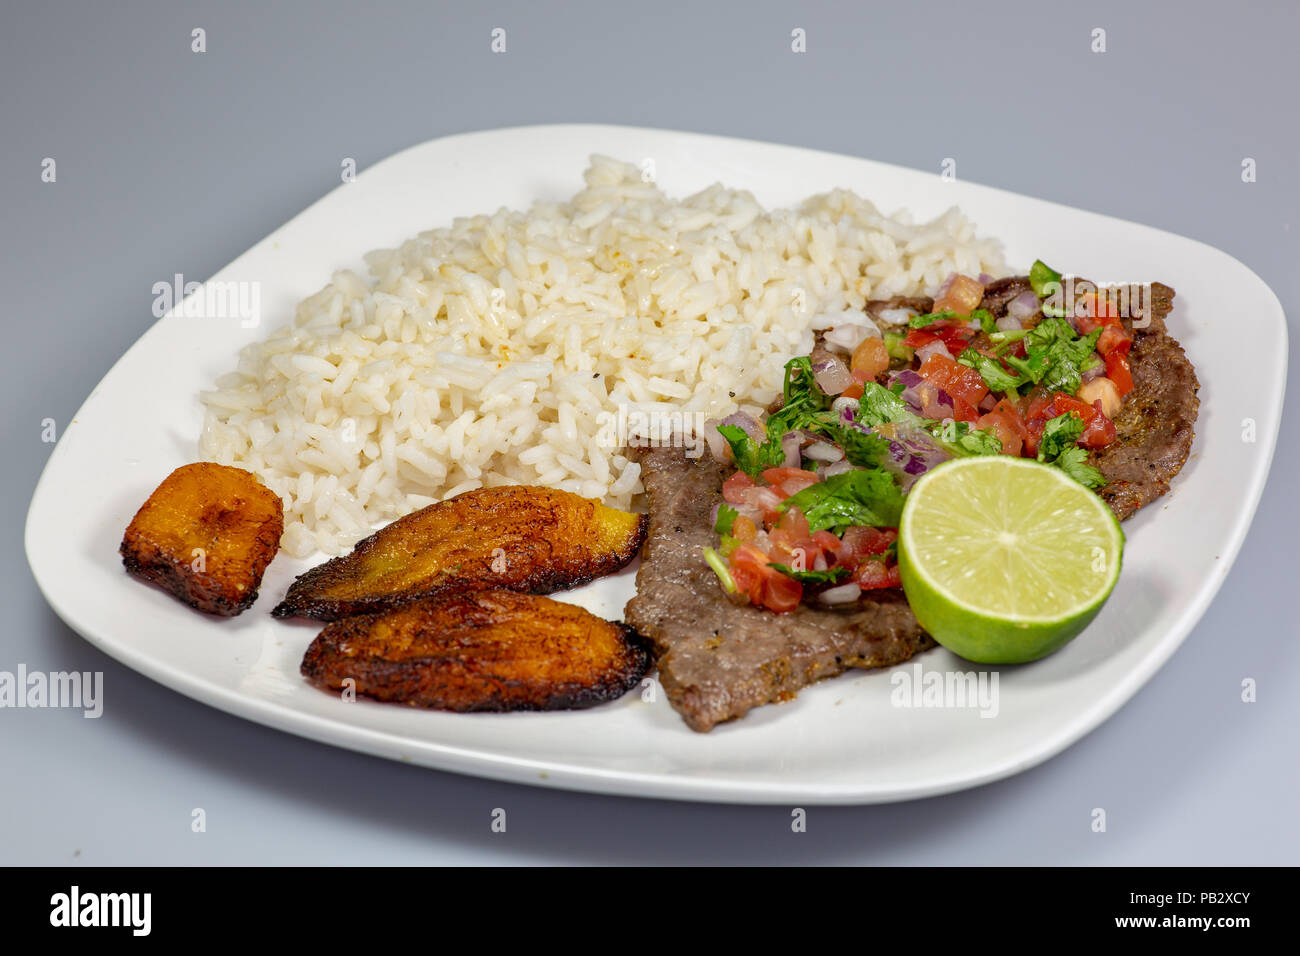 A steak covered in pico de gallo surrounded by plantains and white rice on a white plate. Cuban food. Stock Photo